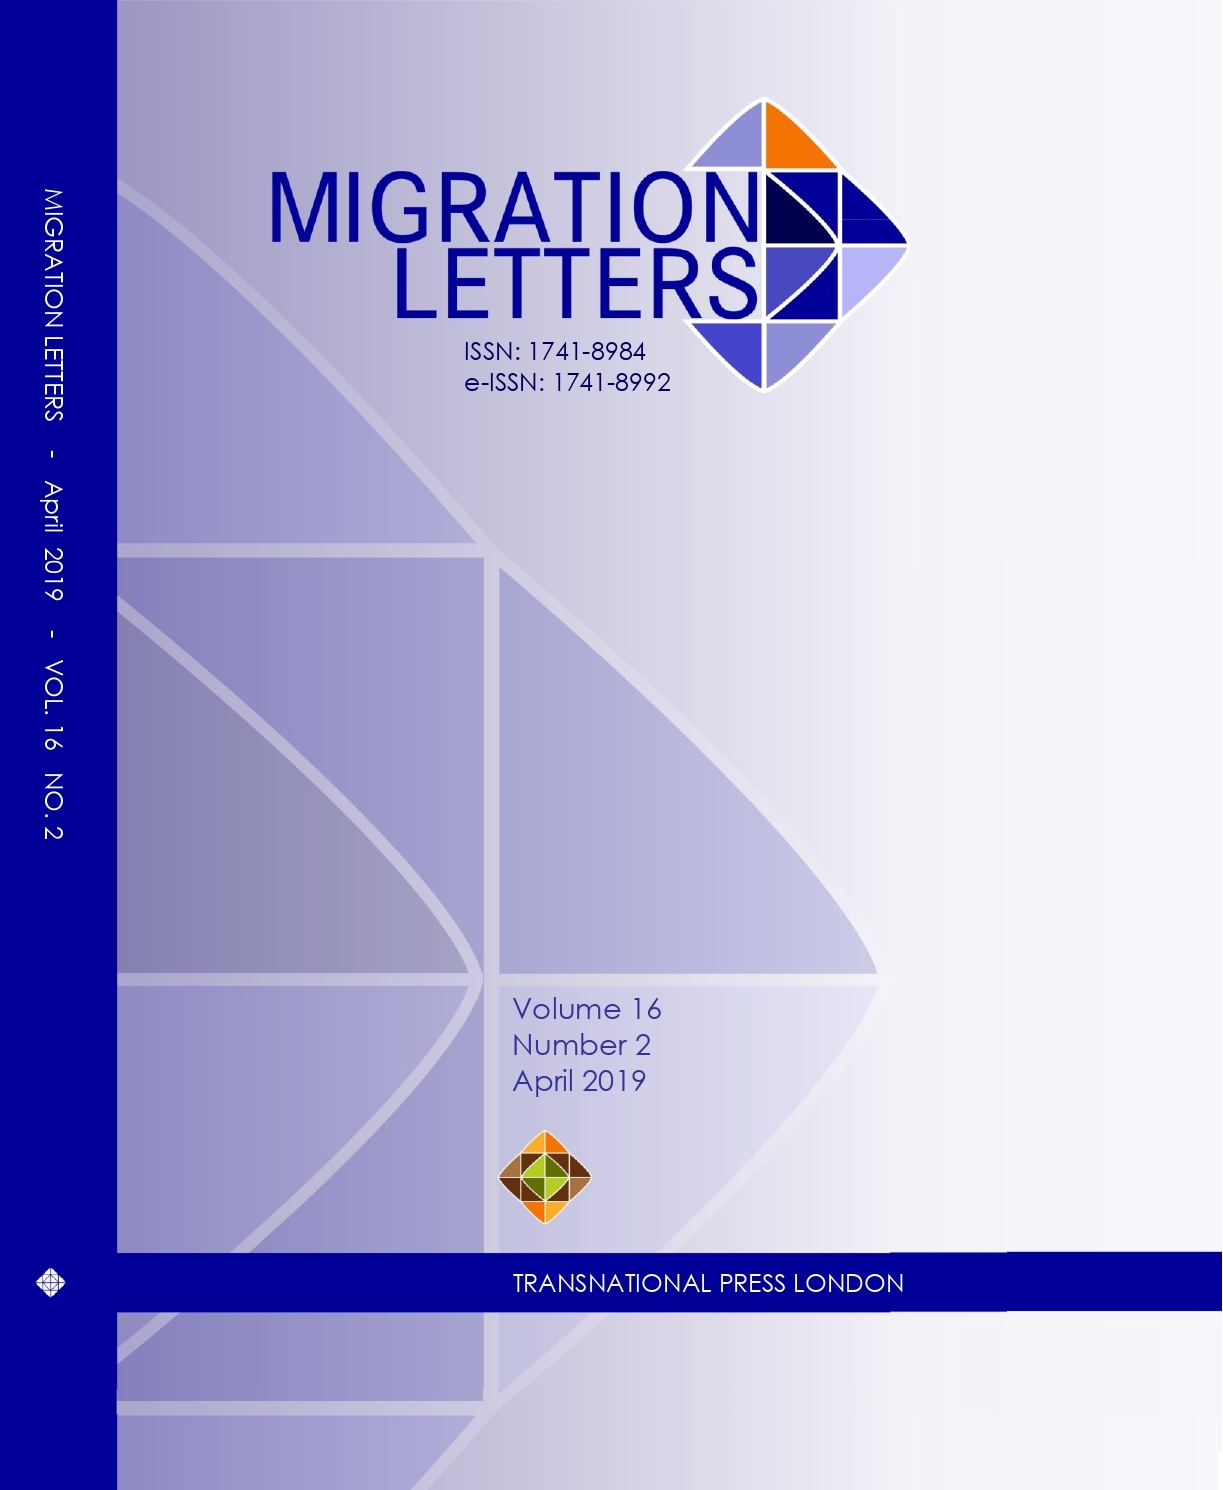 A Life Course Approach to Immigrants' Relocation: Linking Long- and Short-distance Mobility Sequences